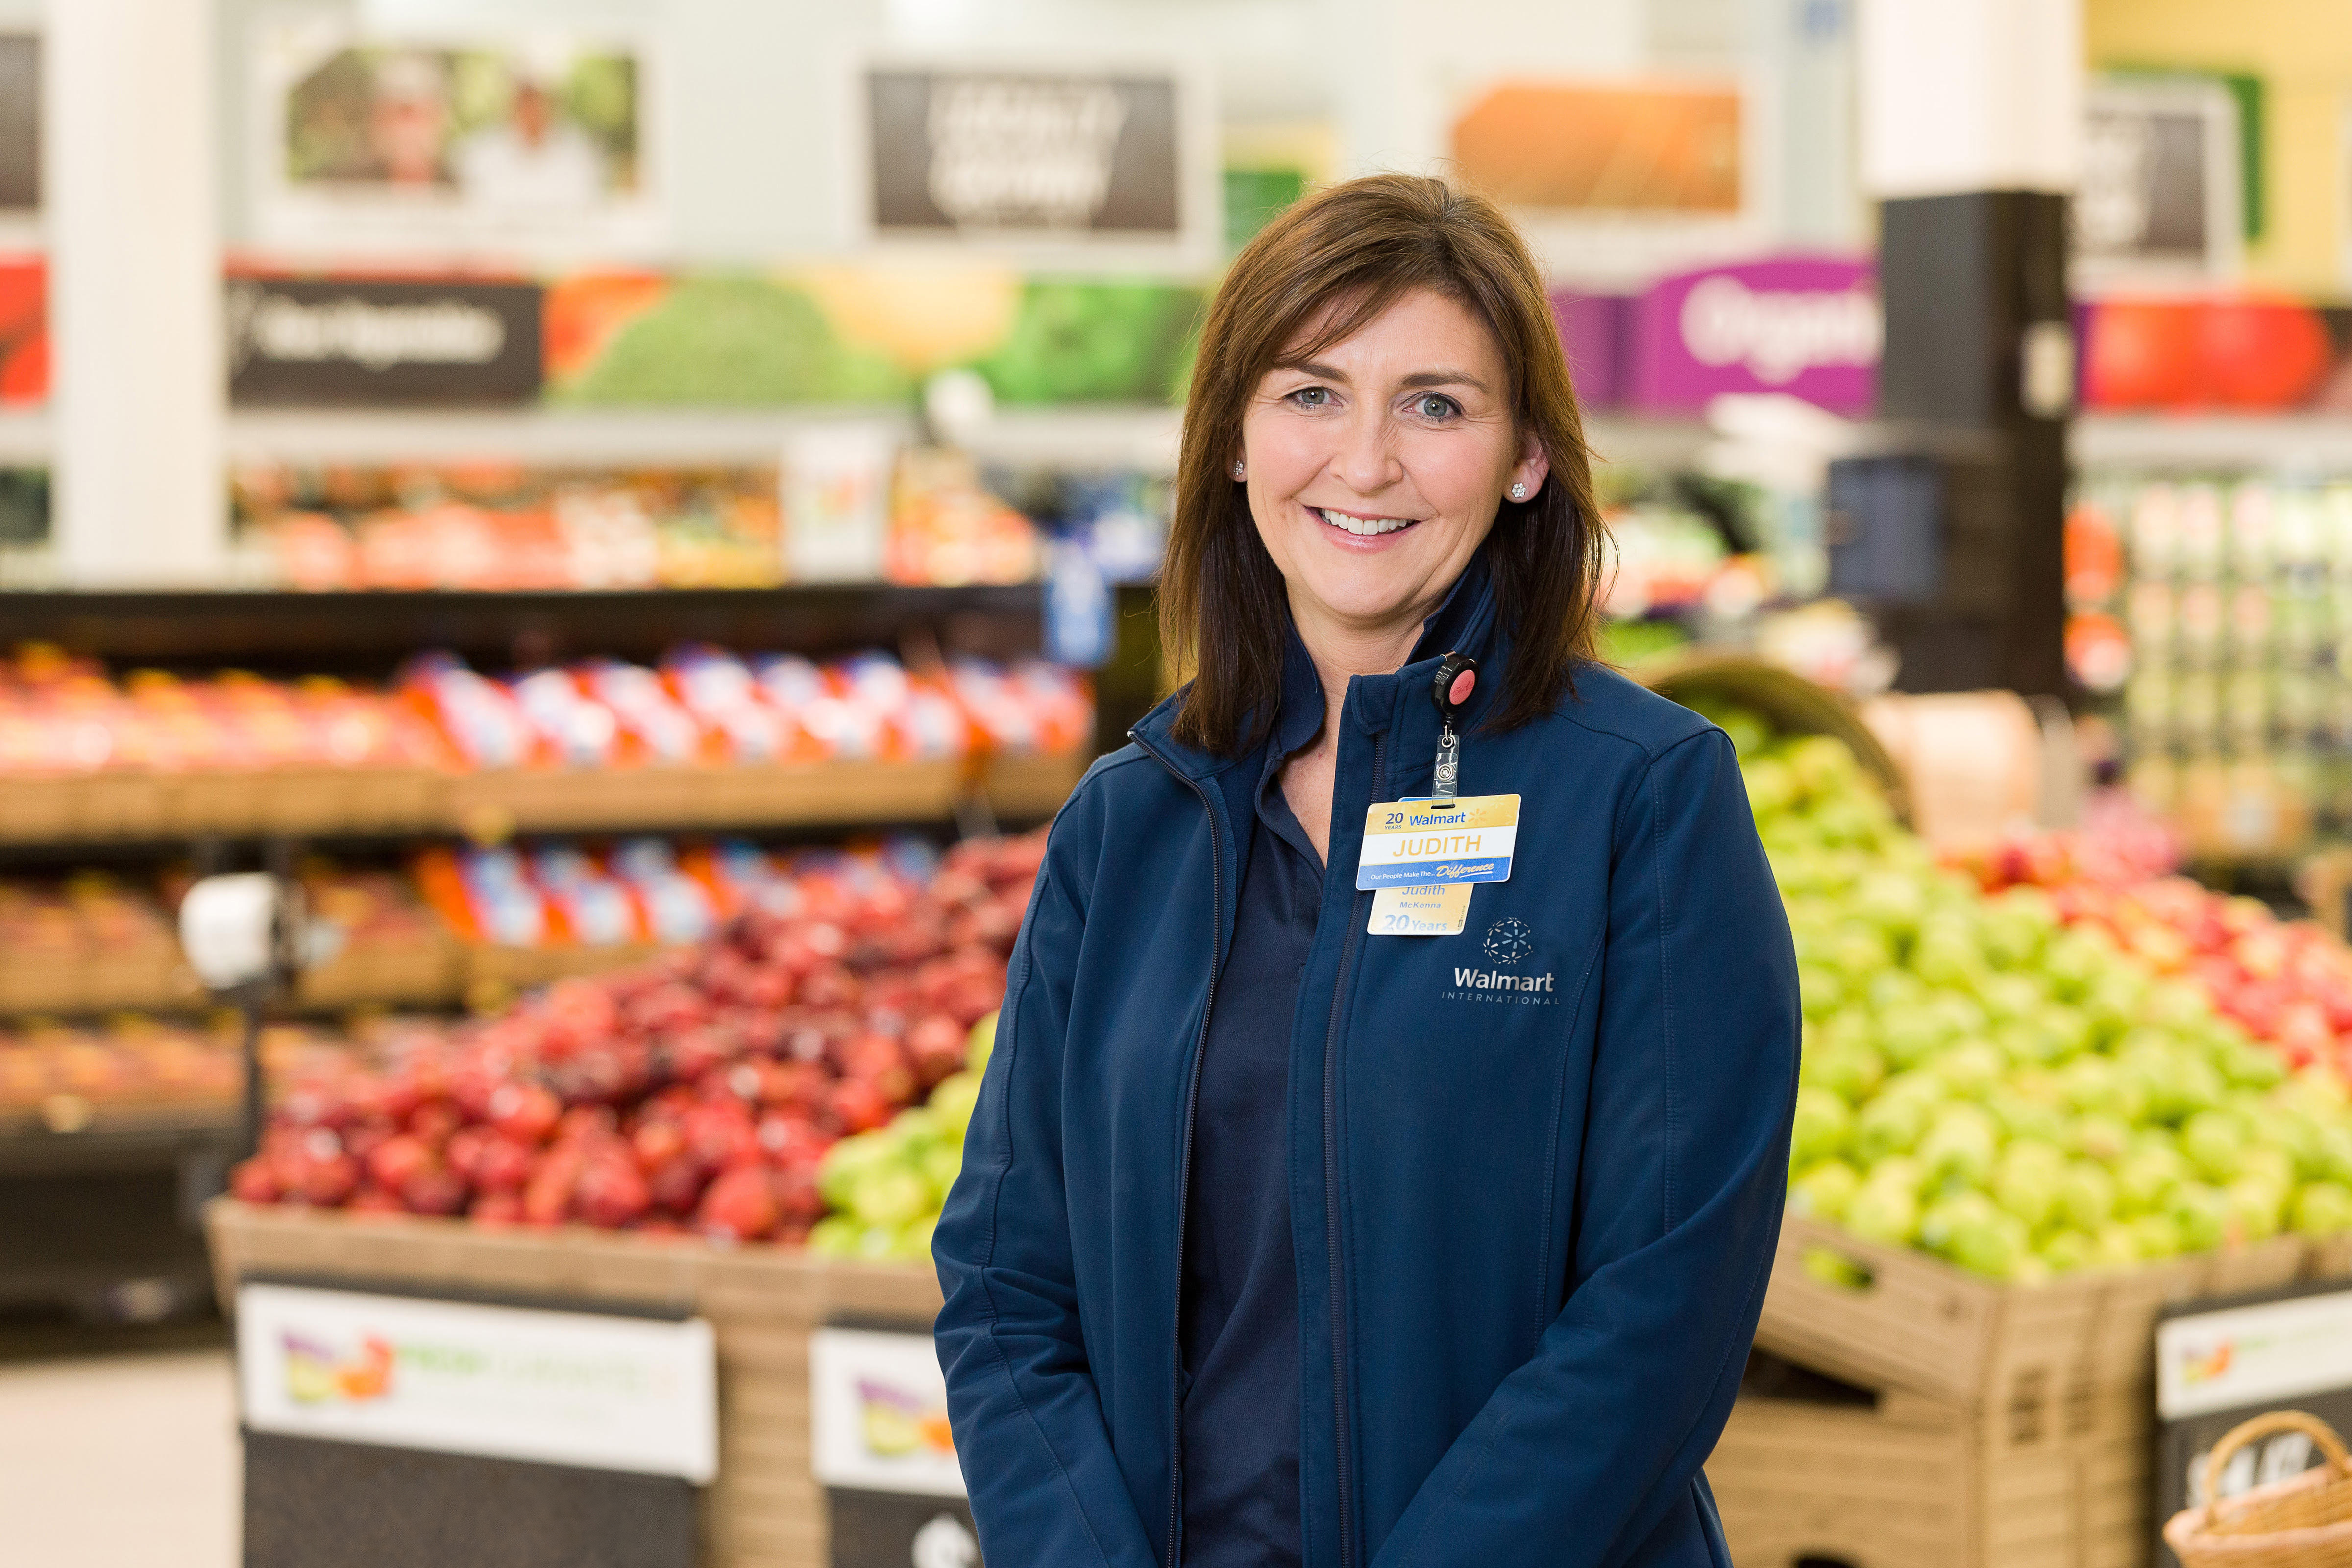 Judith McKenna, CEO of Walmart International